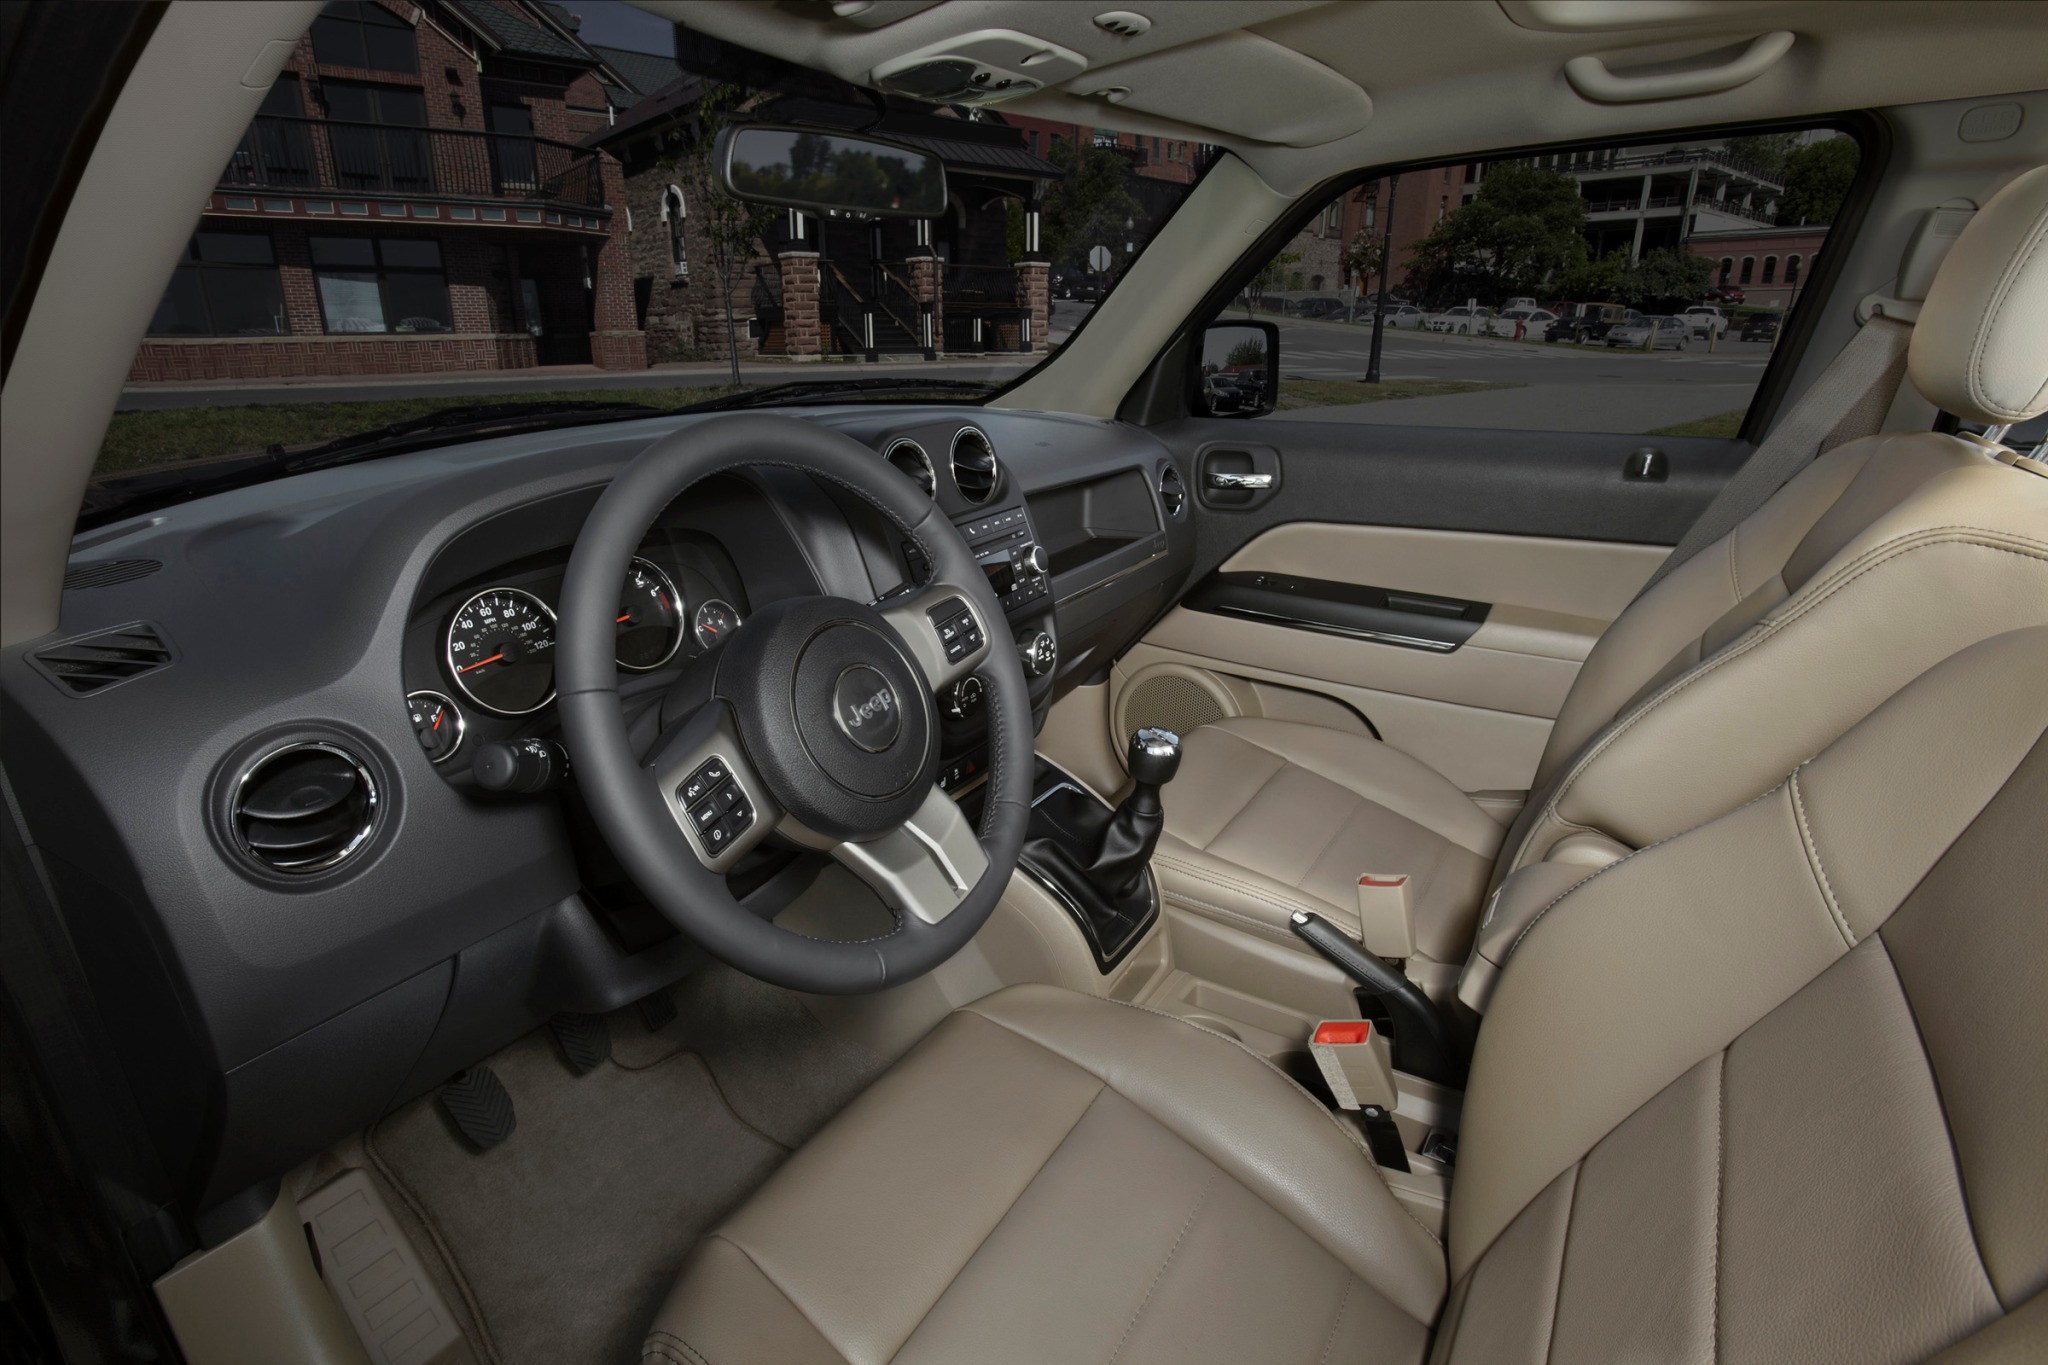 2014 Jeep Patriot Latitud interior #7